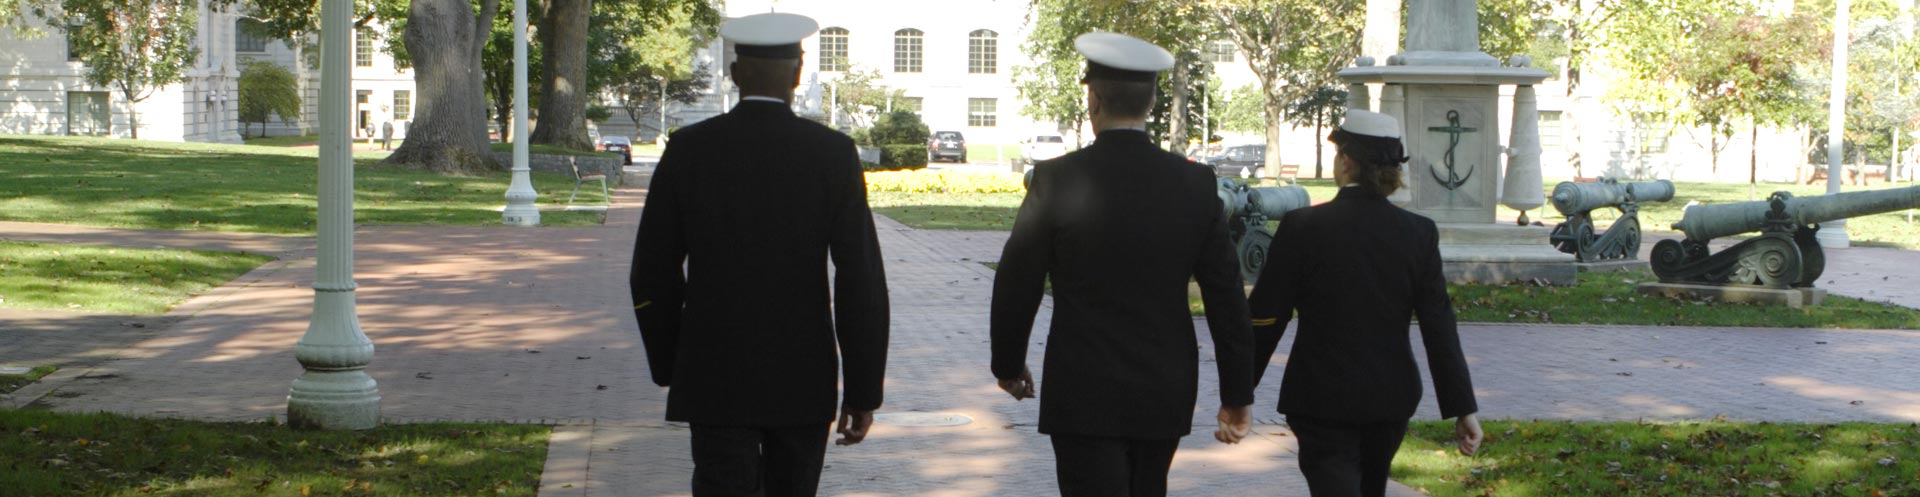 NROTC students walking on campus.